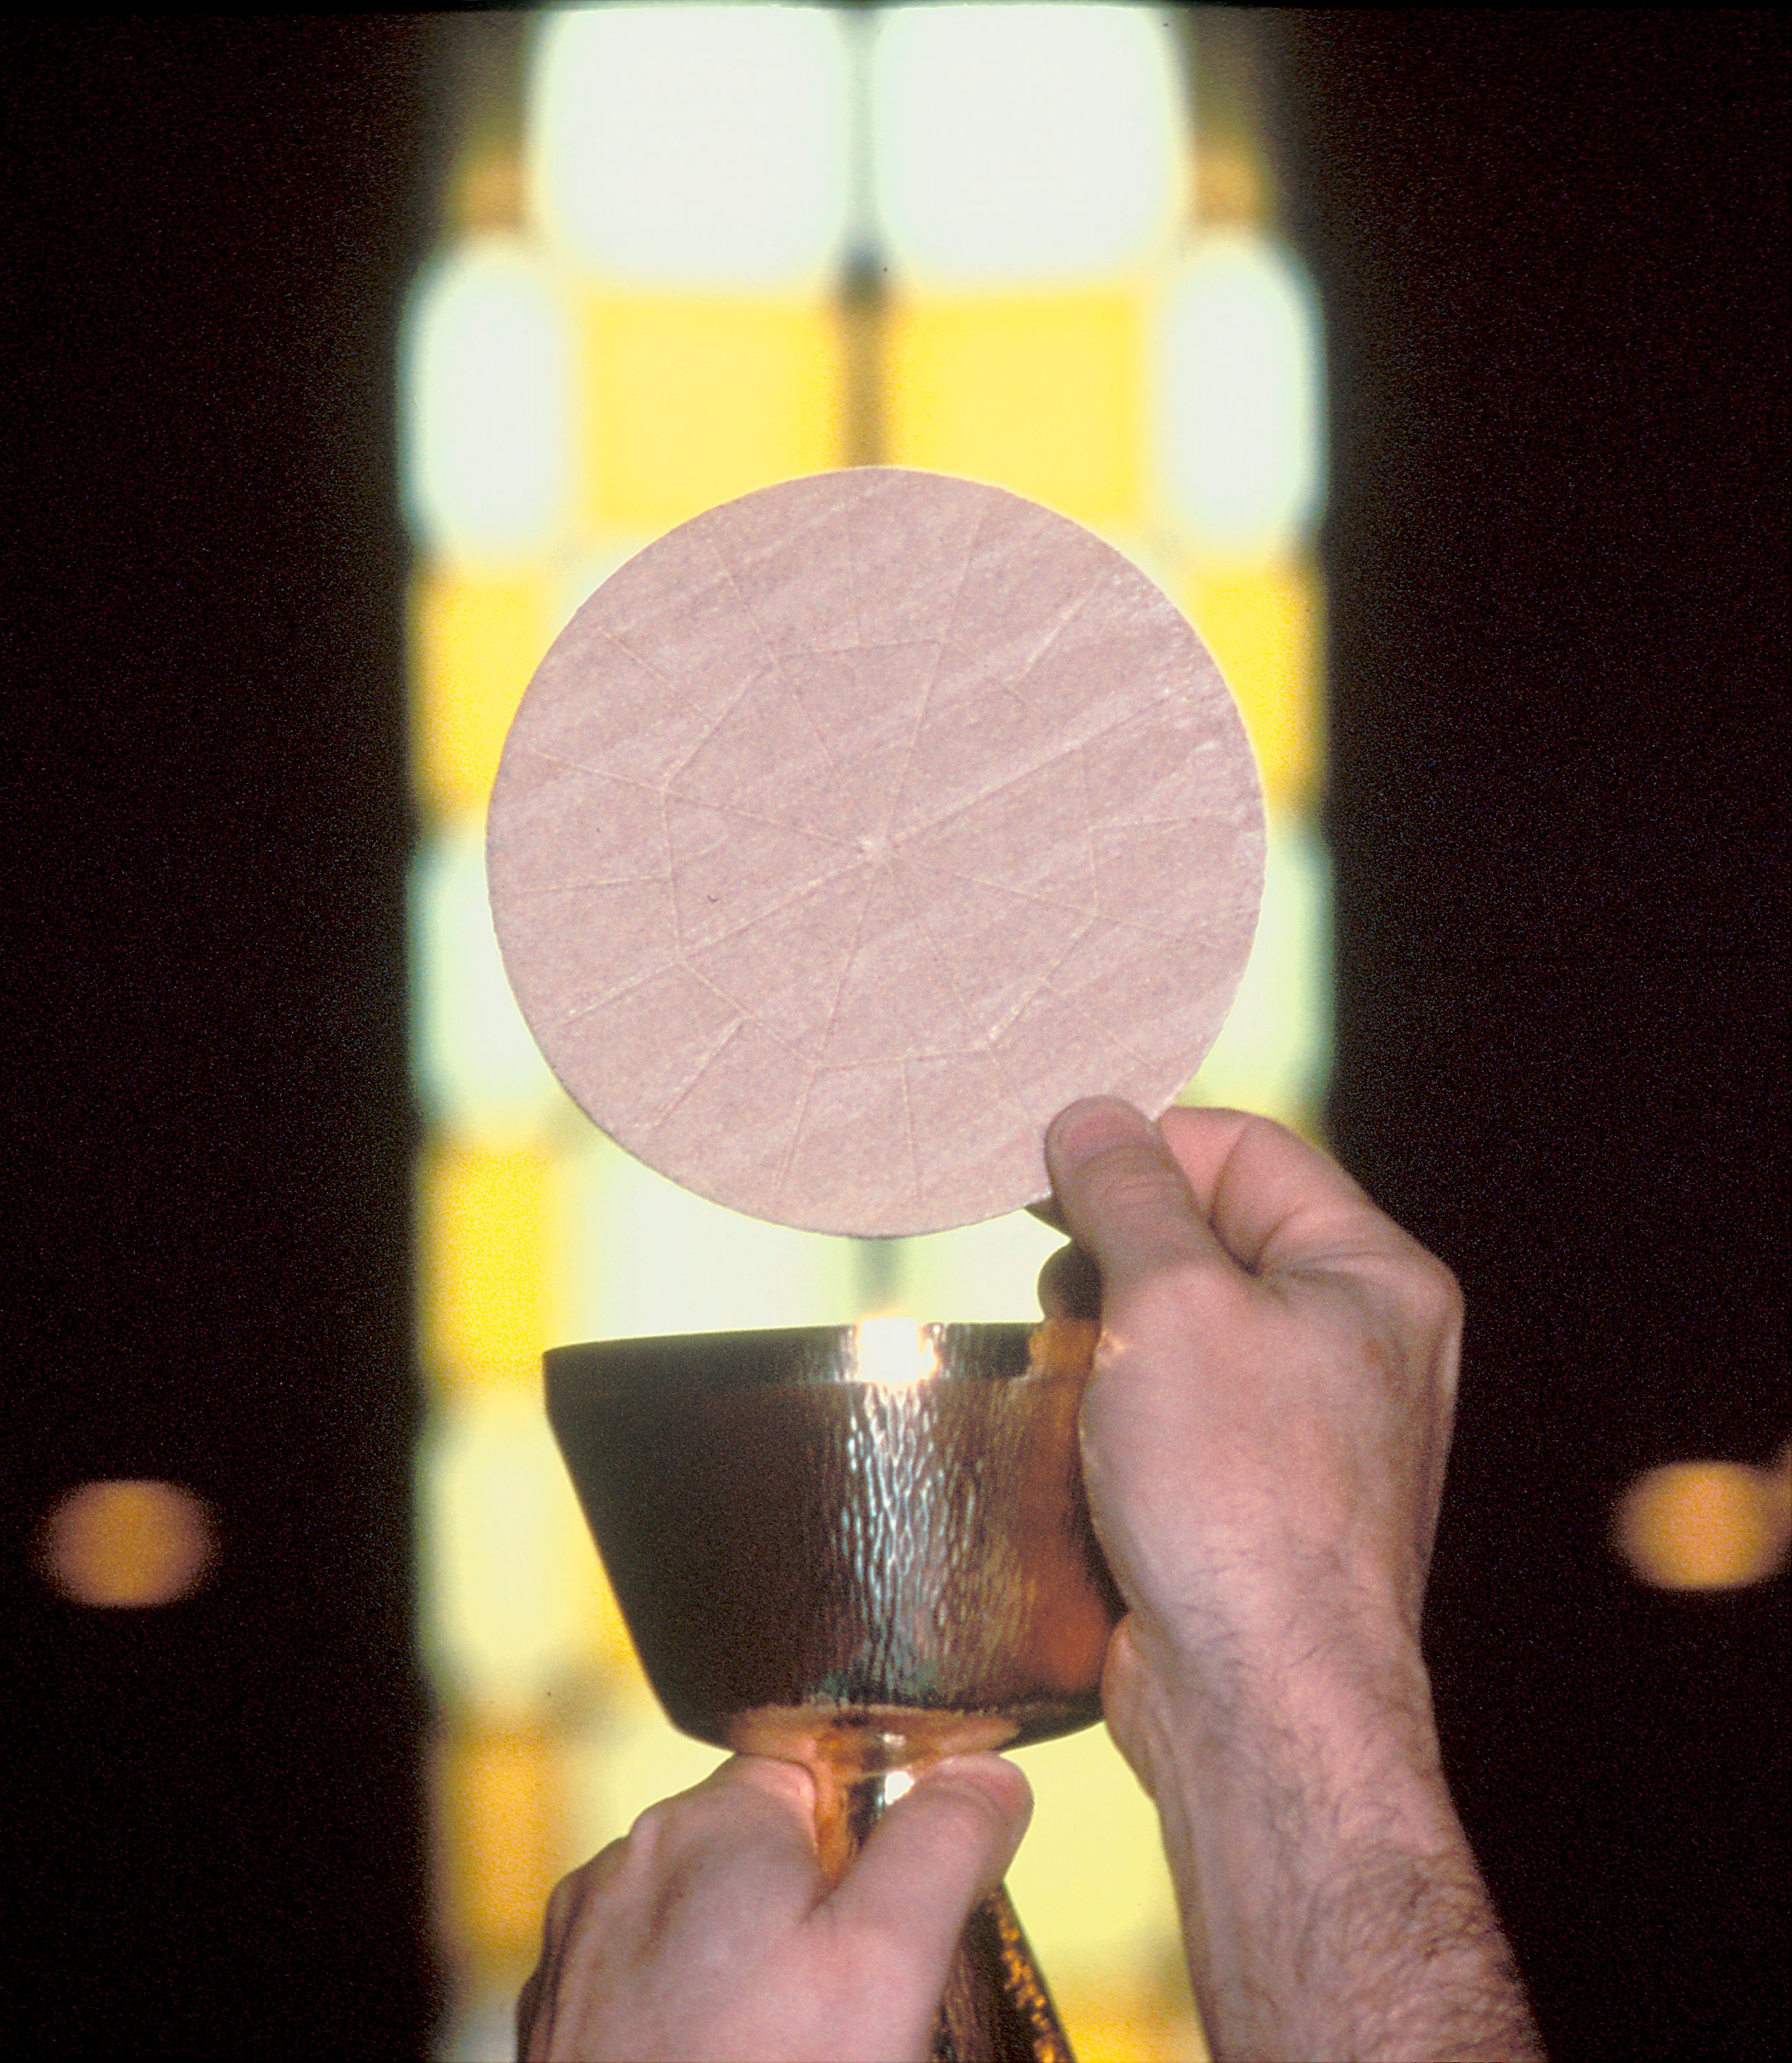 The Eucharist being held up by a priest in front of a stained glass window